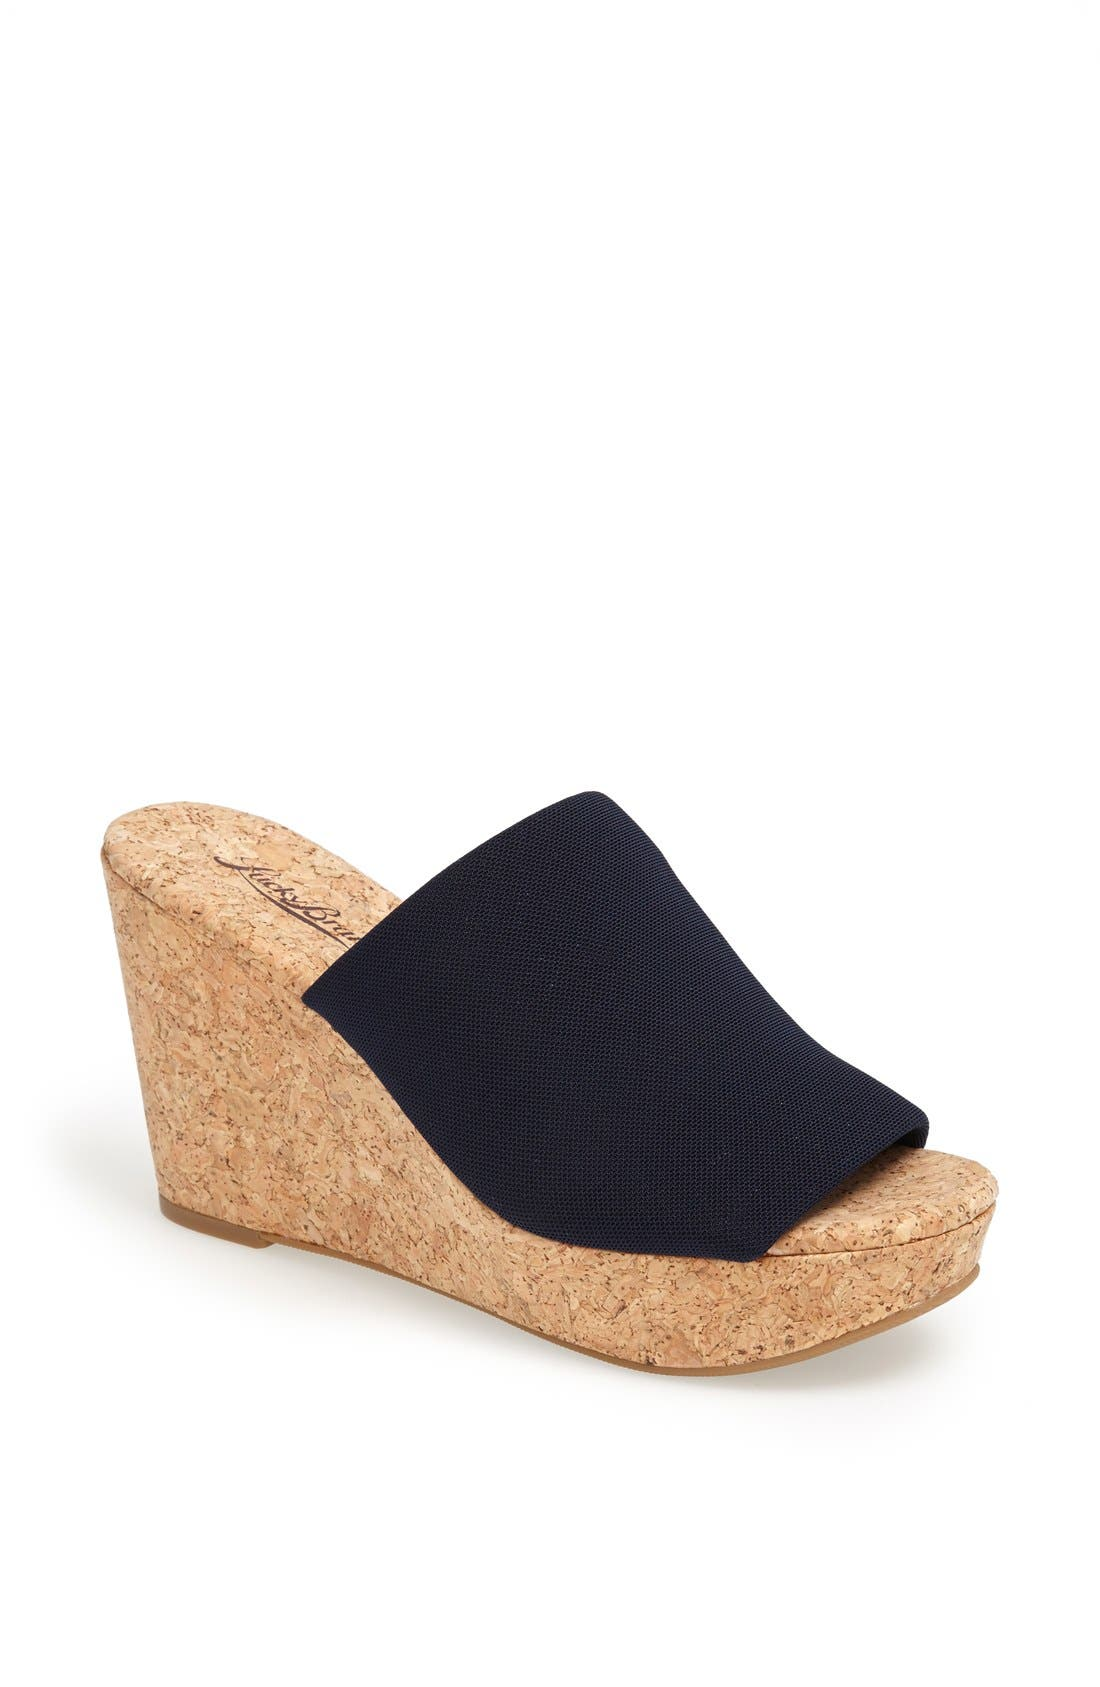 Alternate Image 1 Selected - Lucky Brand 'Marilynn' Wedge Sandal